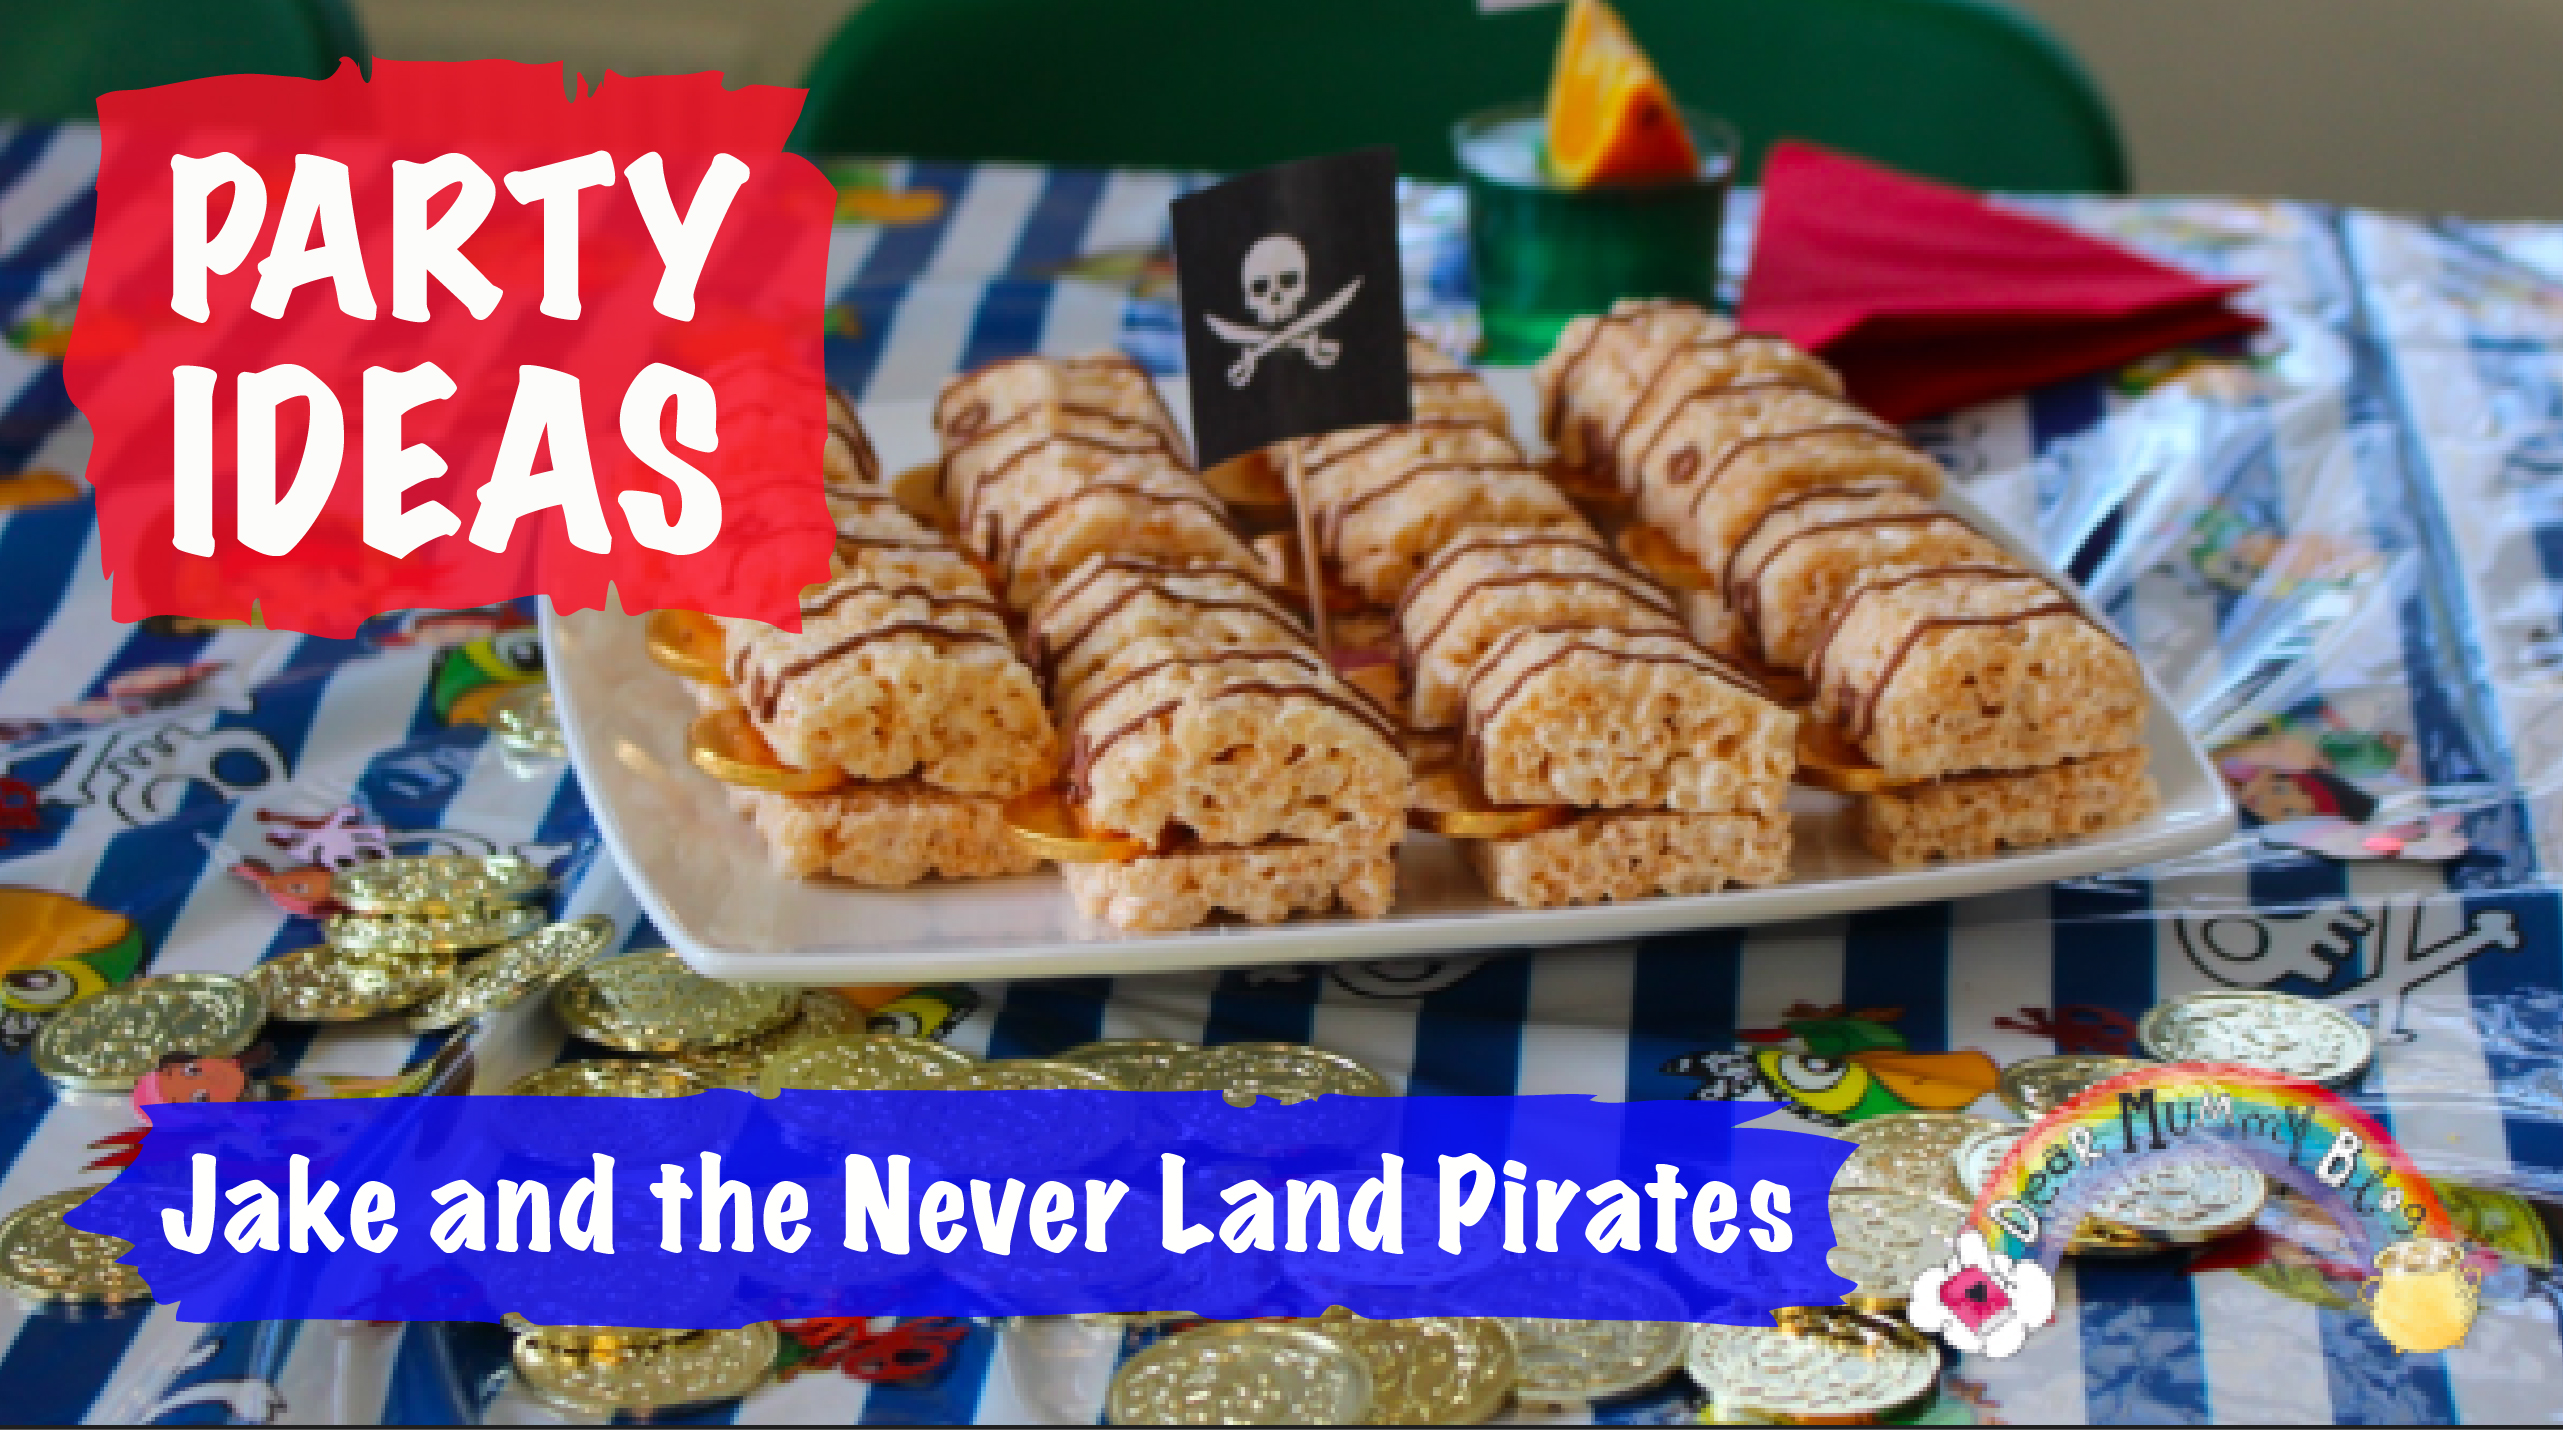 Groovy Jake And The Neverland Pirates Party Ideas Dear Mummy Blog Funny Birthday Cards Online Inifofree Goldxyz